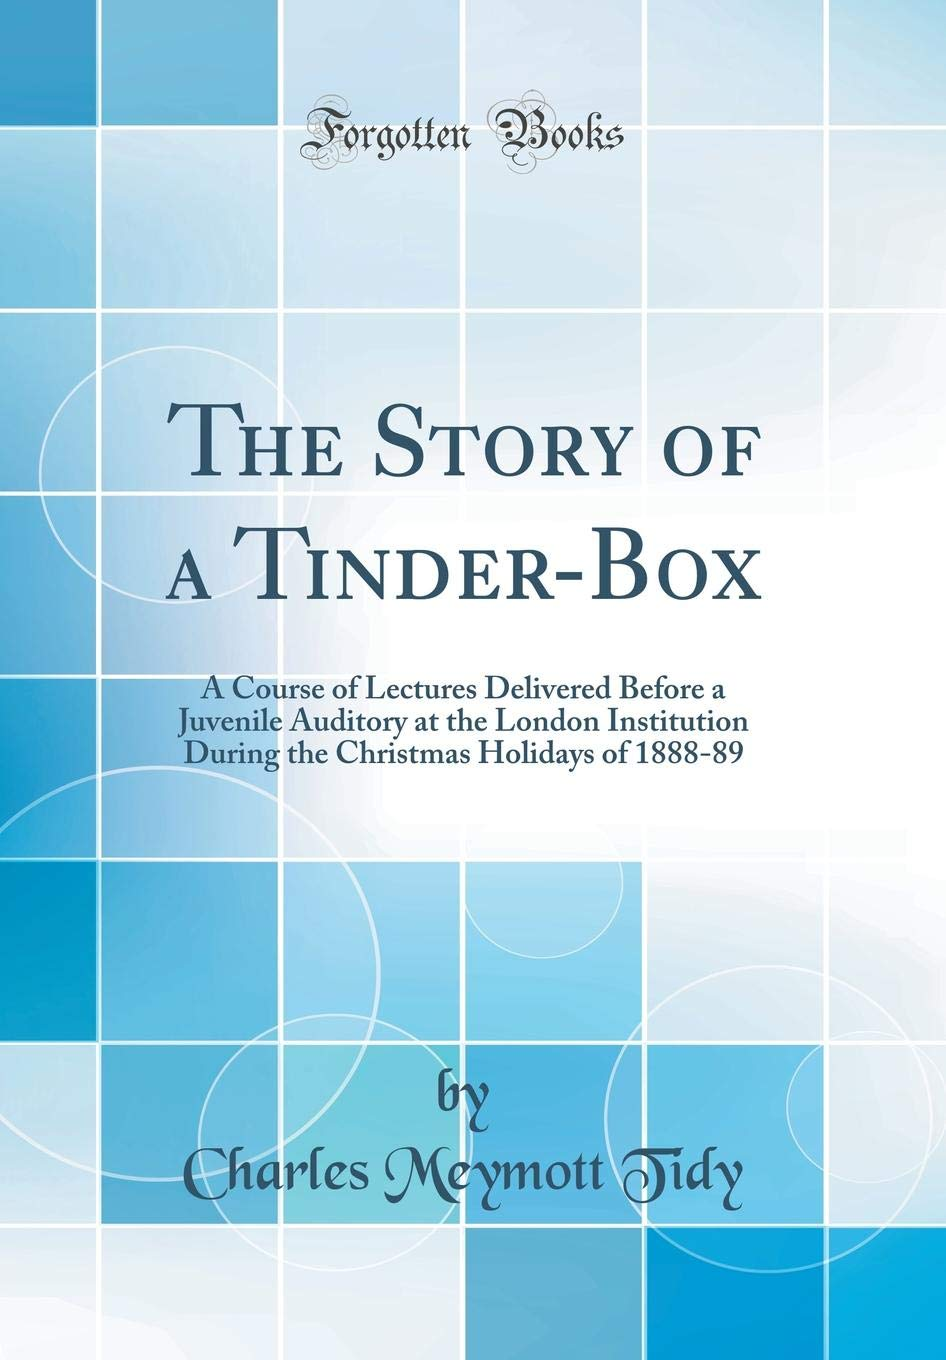 The Story of a Tinder-Box: A Course of Lectures Delivered Before a Juvenile Auditory at the London Institution During the Christmas Holidays of 1888-89 (Classic Reprint) ebook